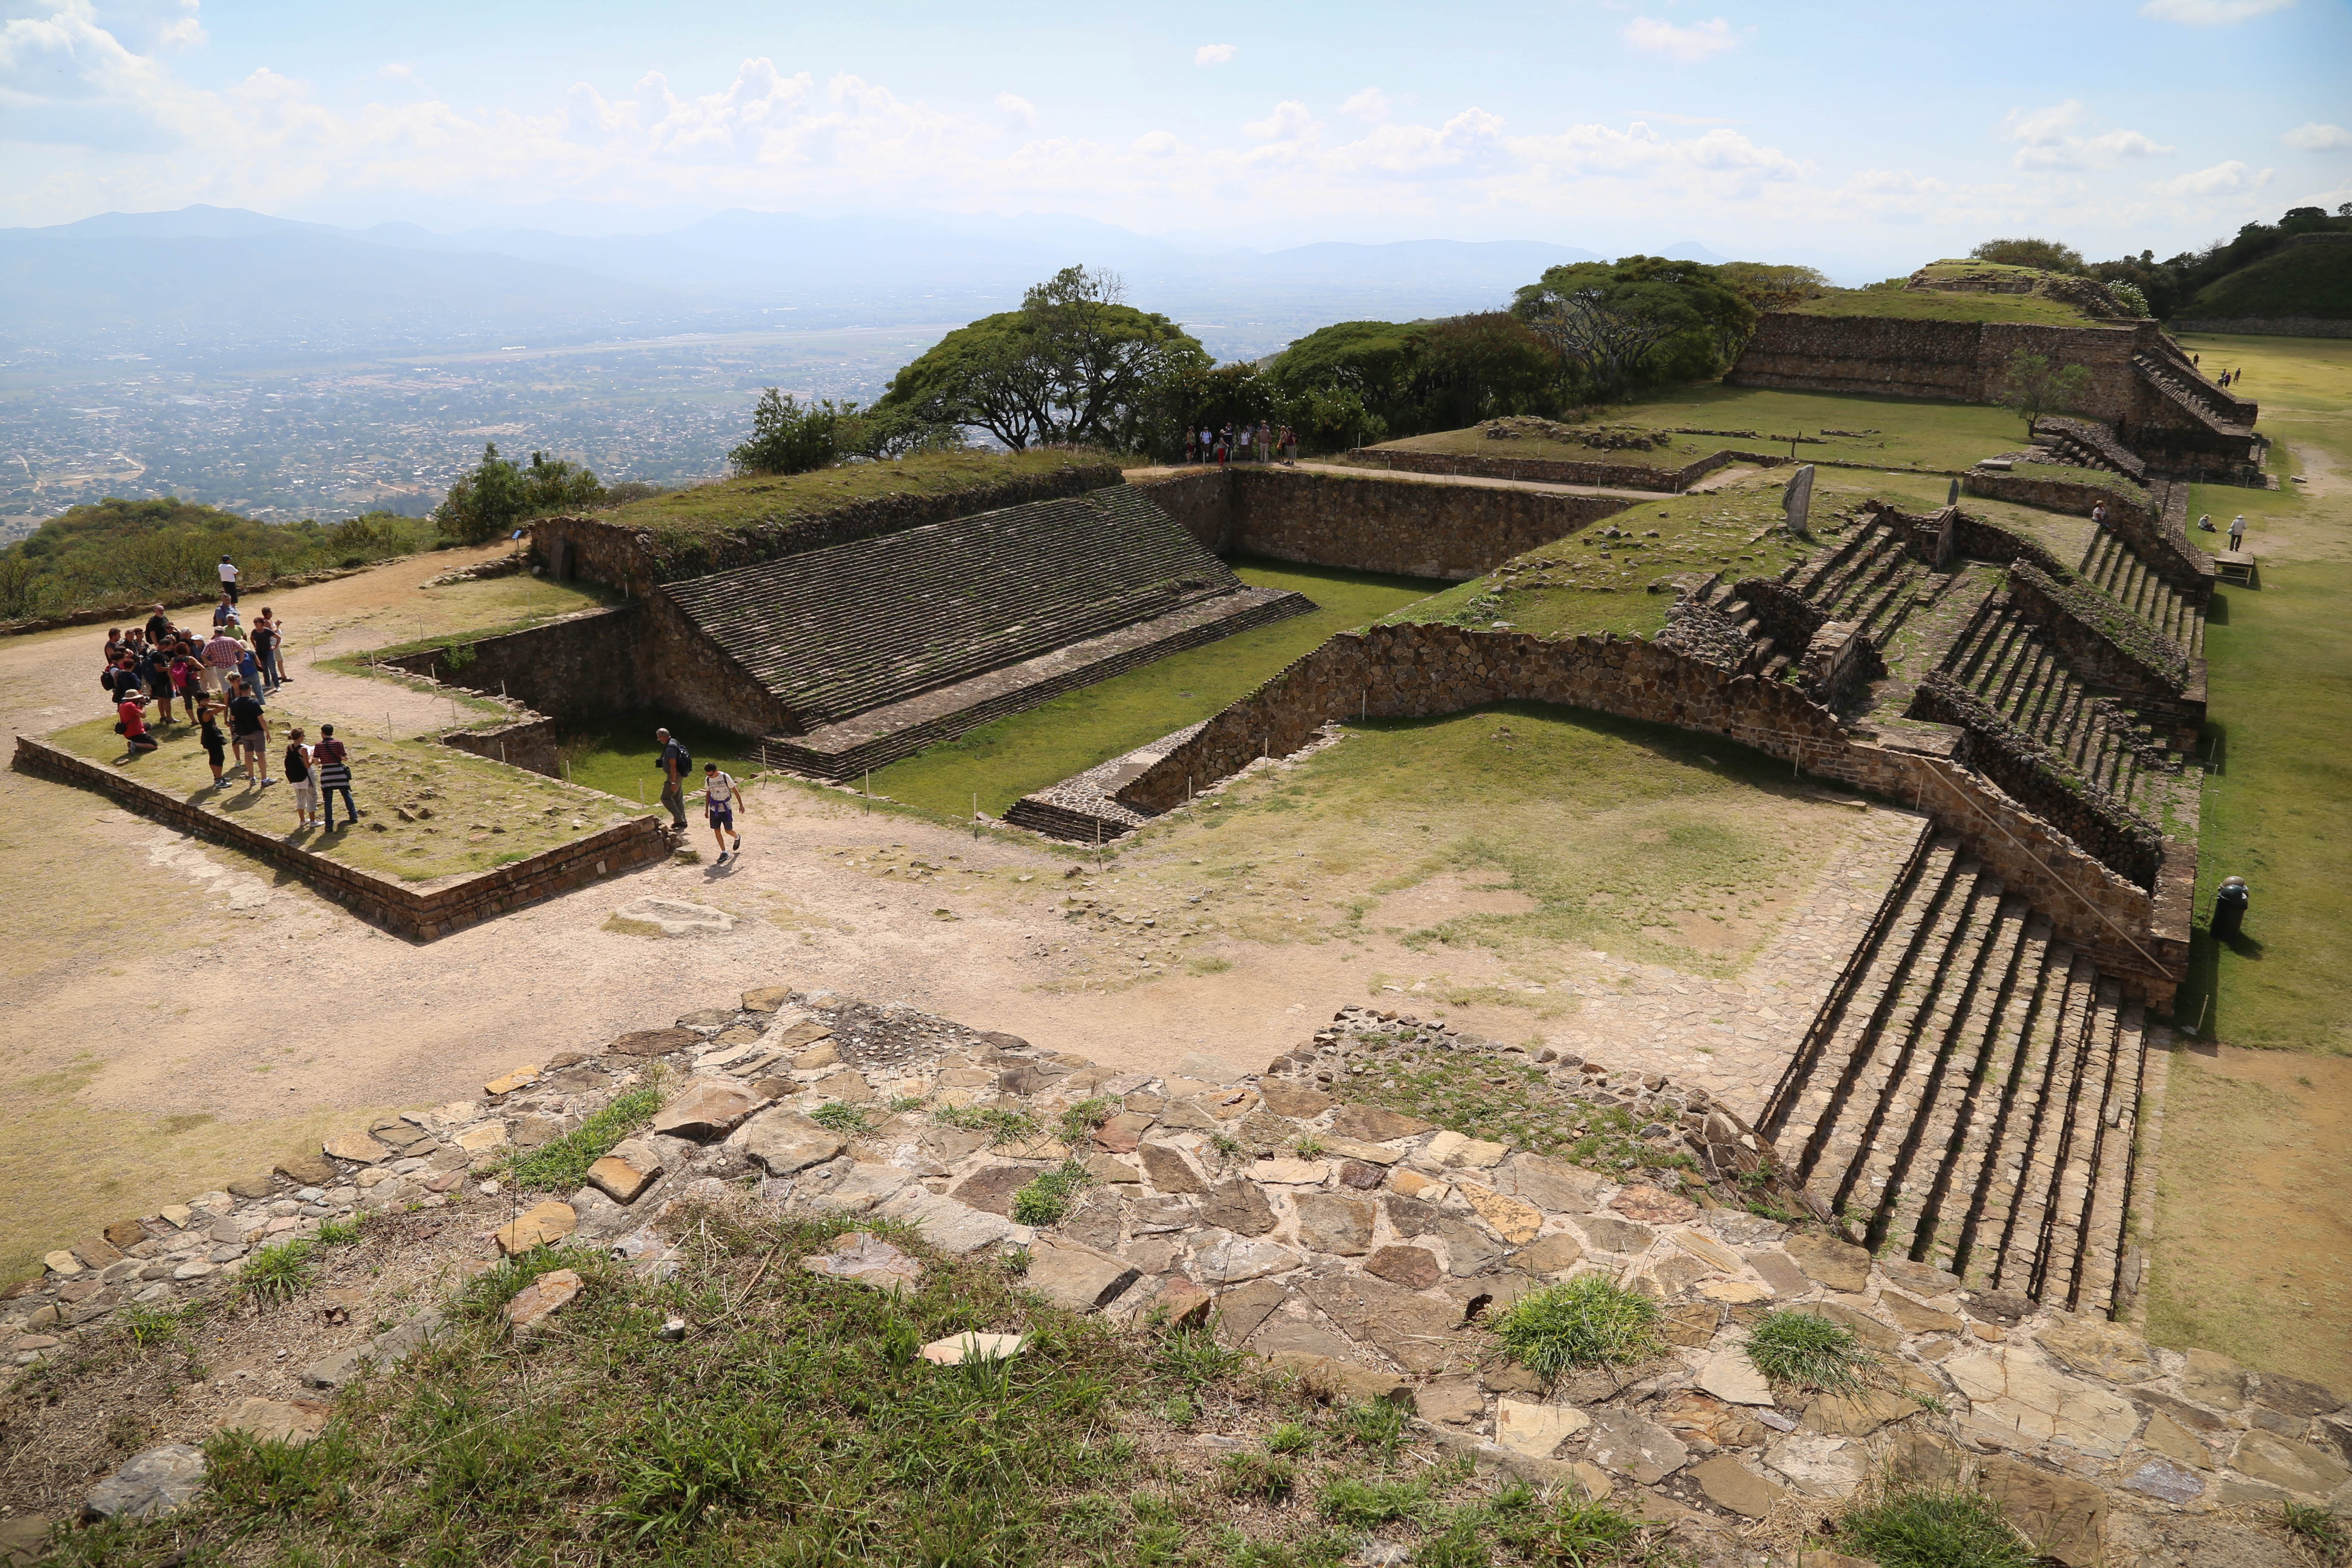 The ball court, left, is thought to have played a major part in the culture of the Zapotecs. It is believed the captain of the winning team was put to death.